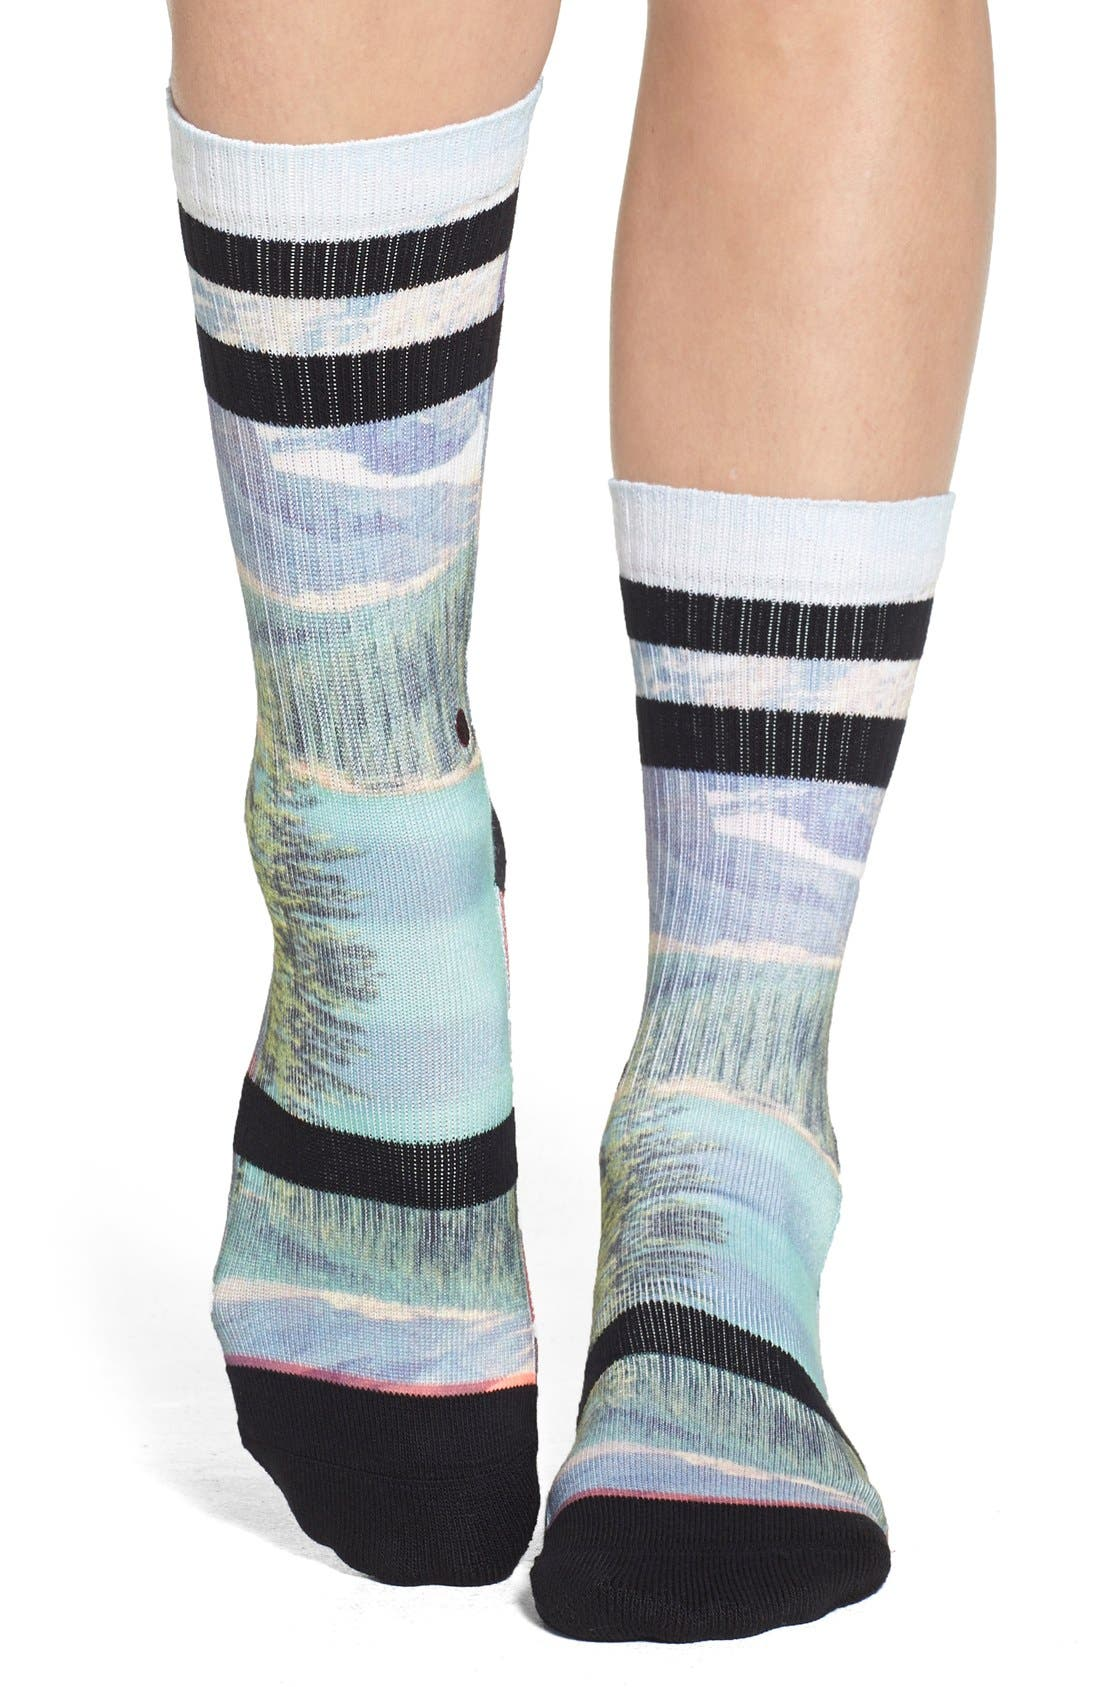 Alternate Image 1 Selected - Stance 'Cowboy' Print Crew Socks